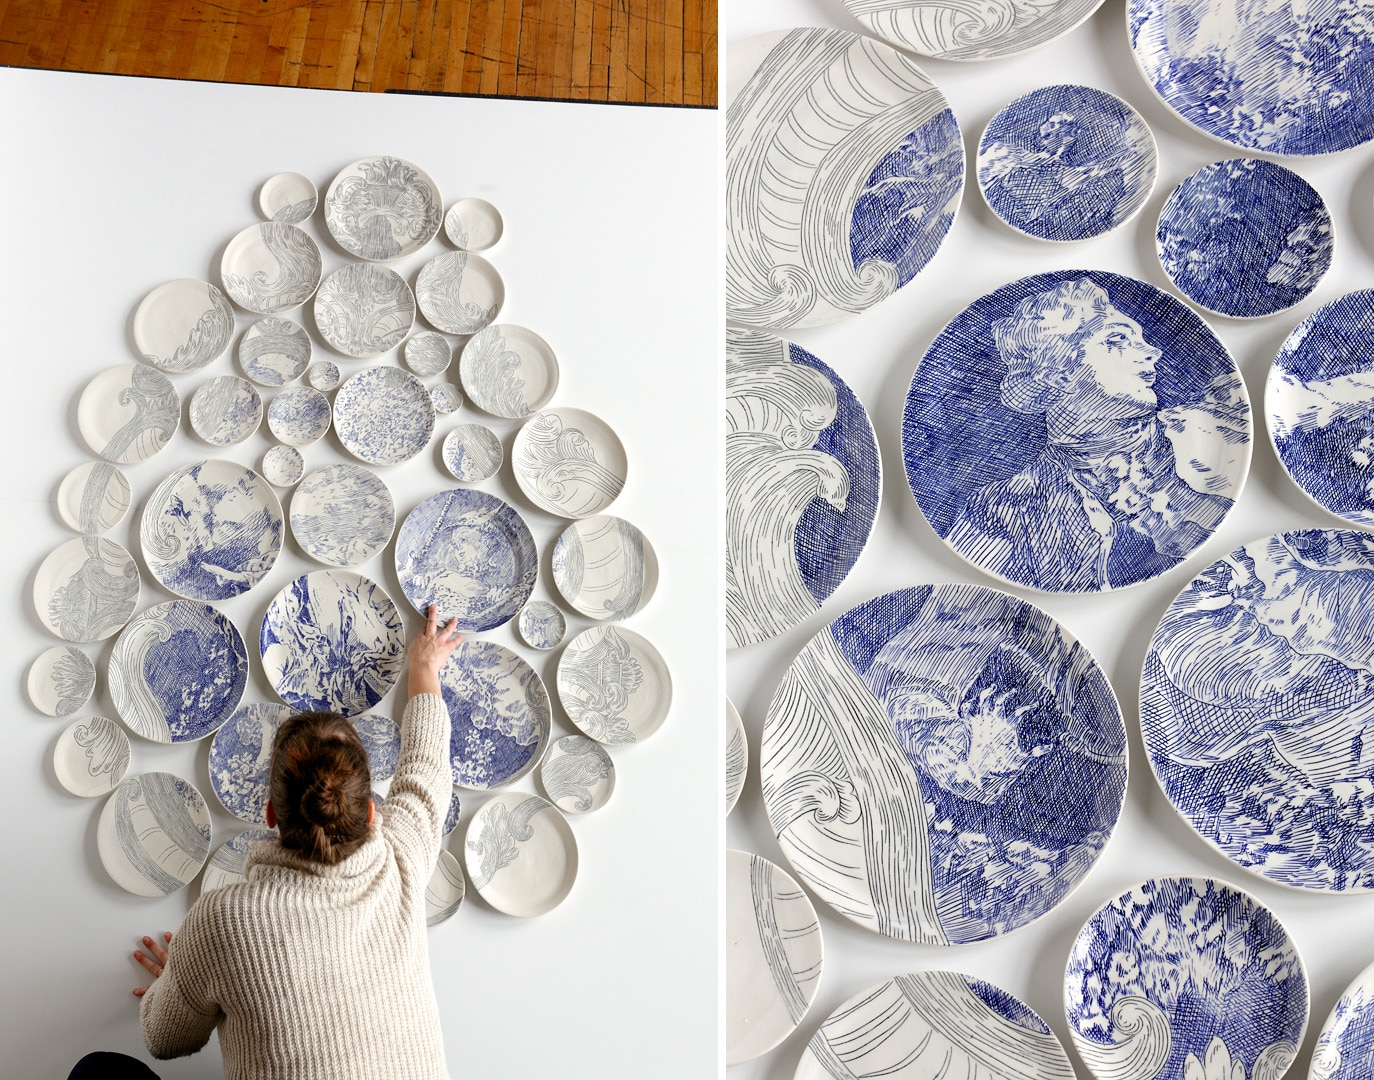 Quand on Aime Tout est Plaisir After Fragonard USA 2013 & Hand-painted Ceramic Plate Installations by Molly Hatch - Colossal ...